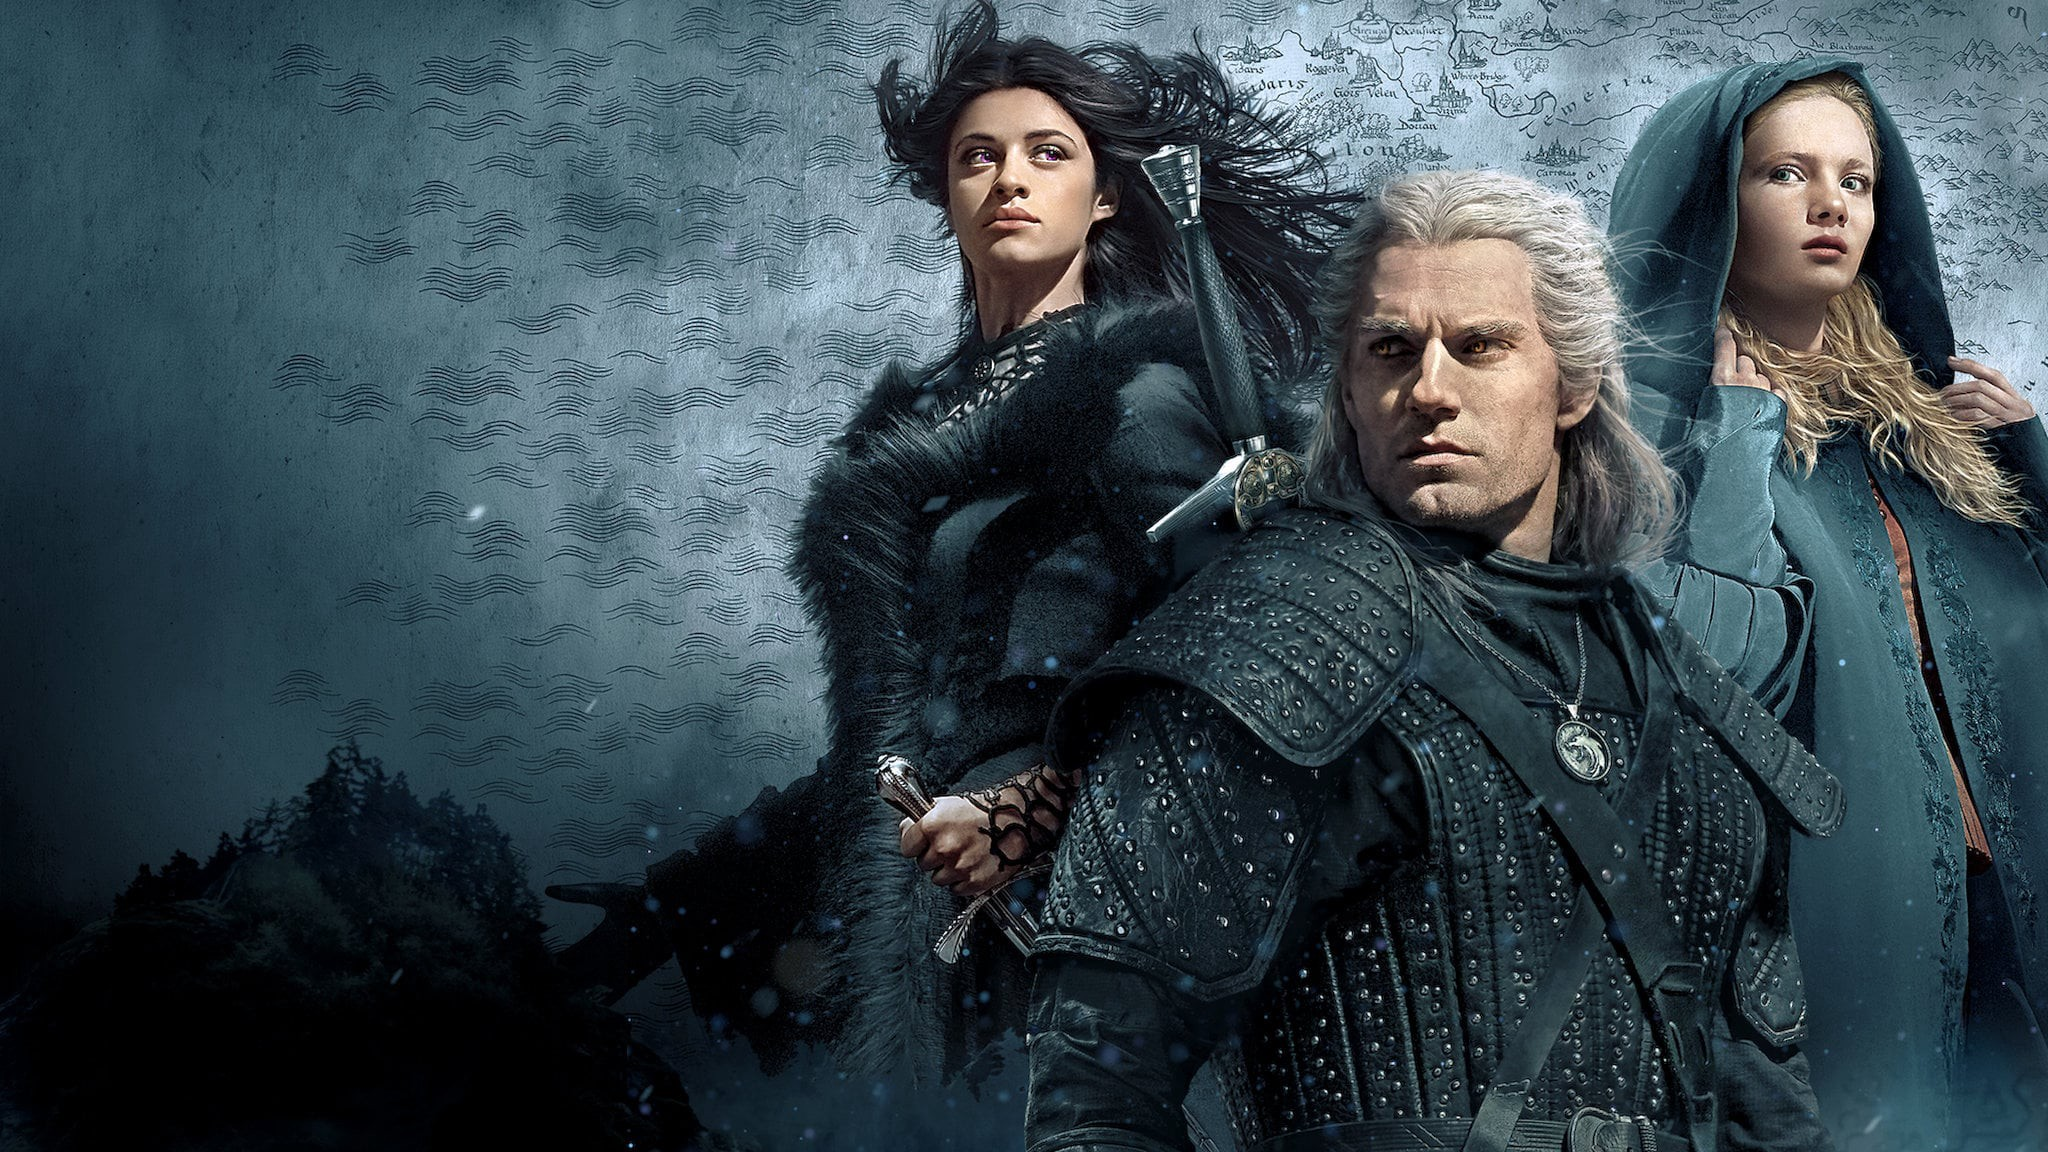 the witcher show wallpaper 70100